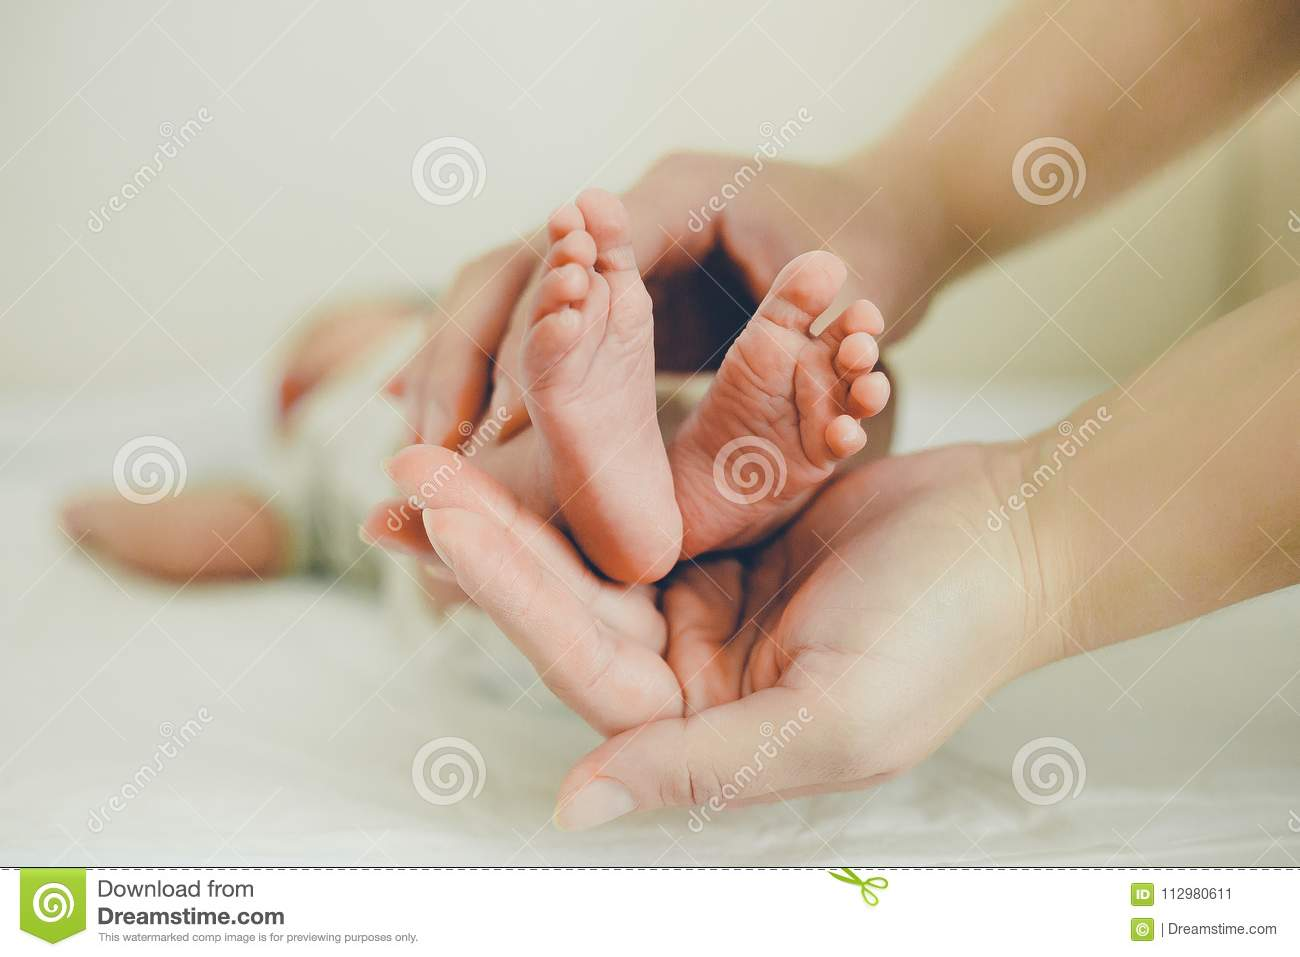 Mom gently massaging the tiny feet of a baby